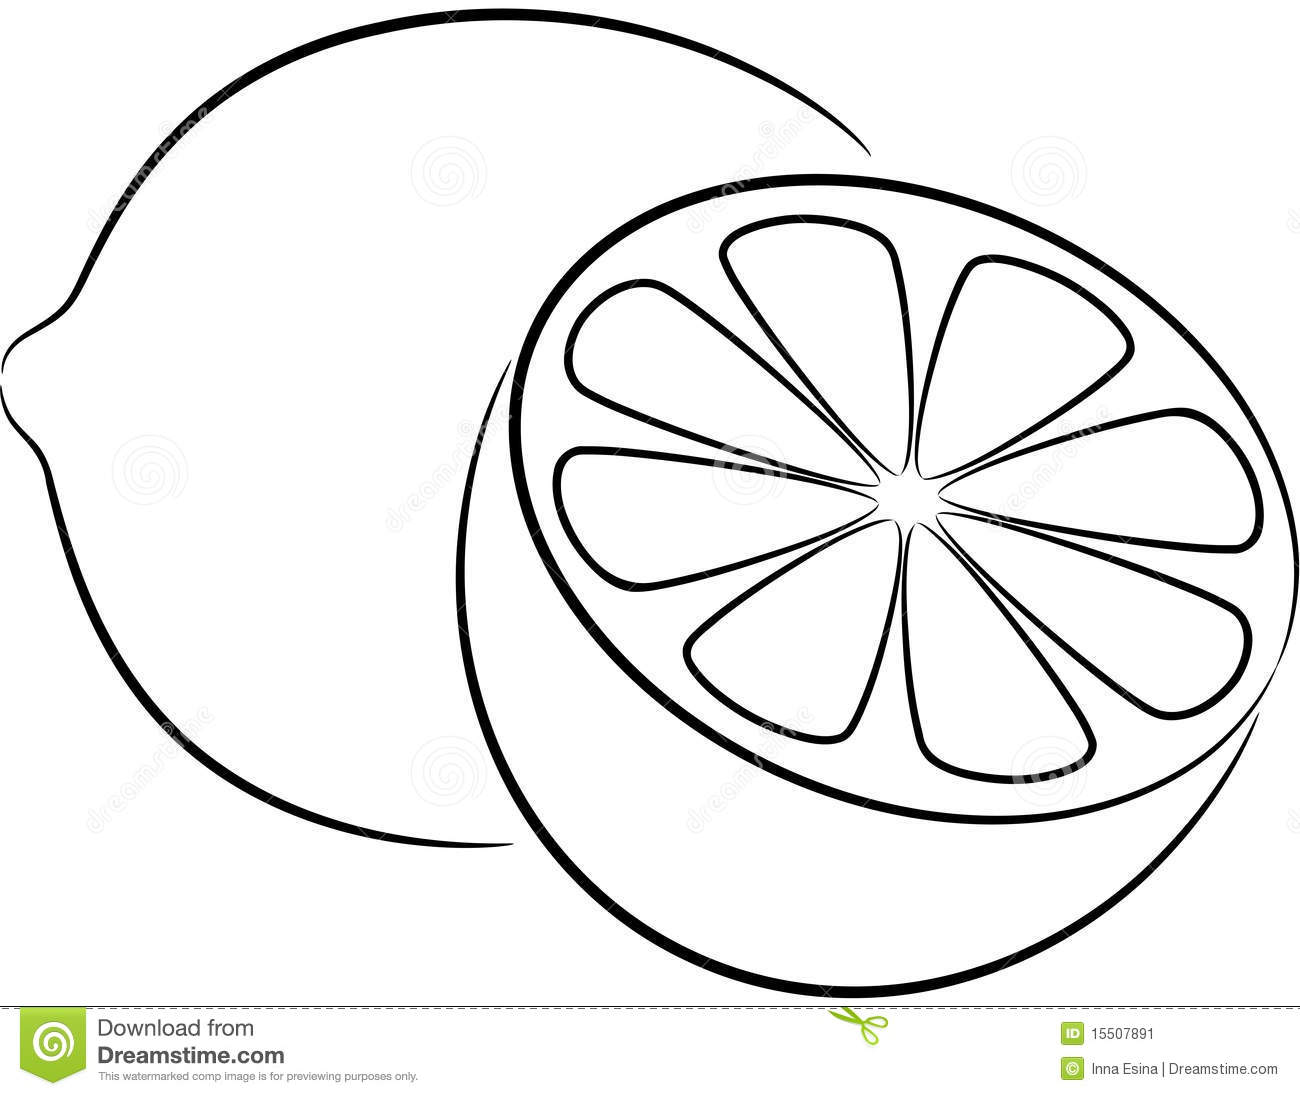 Lemon Black And White Clipart